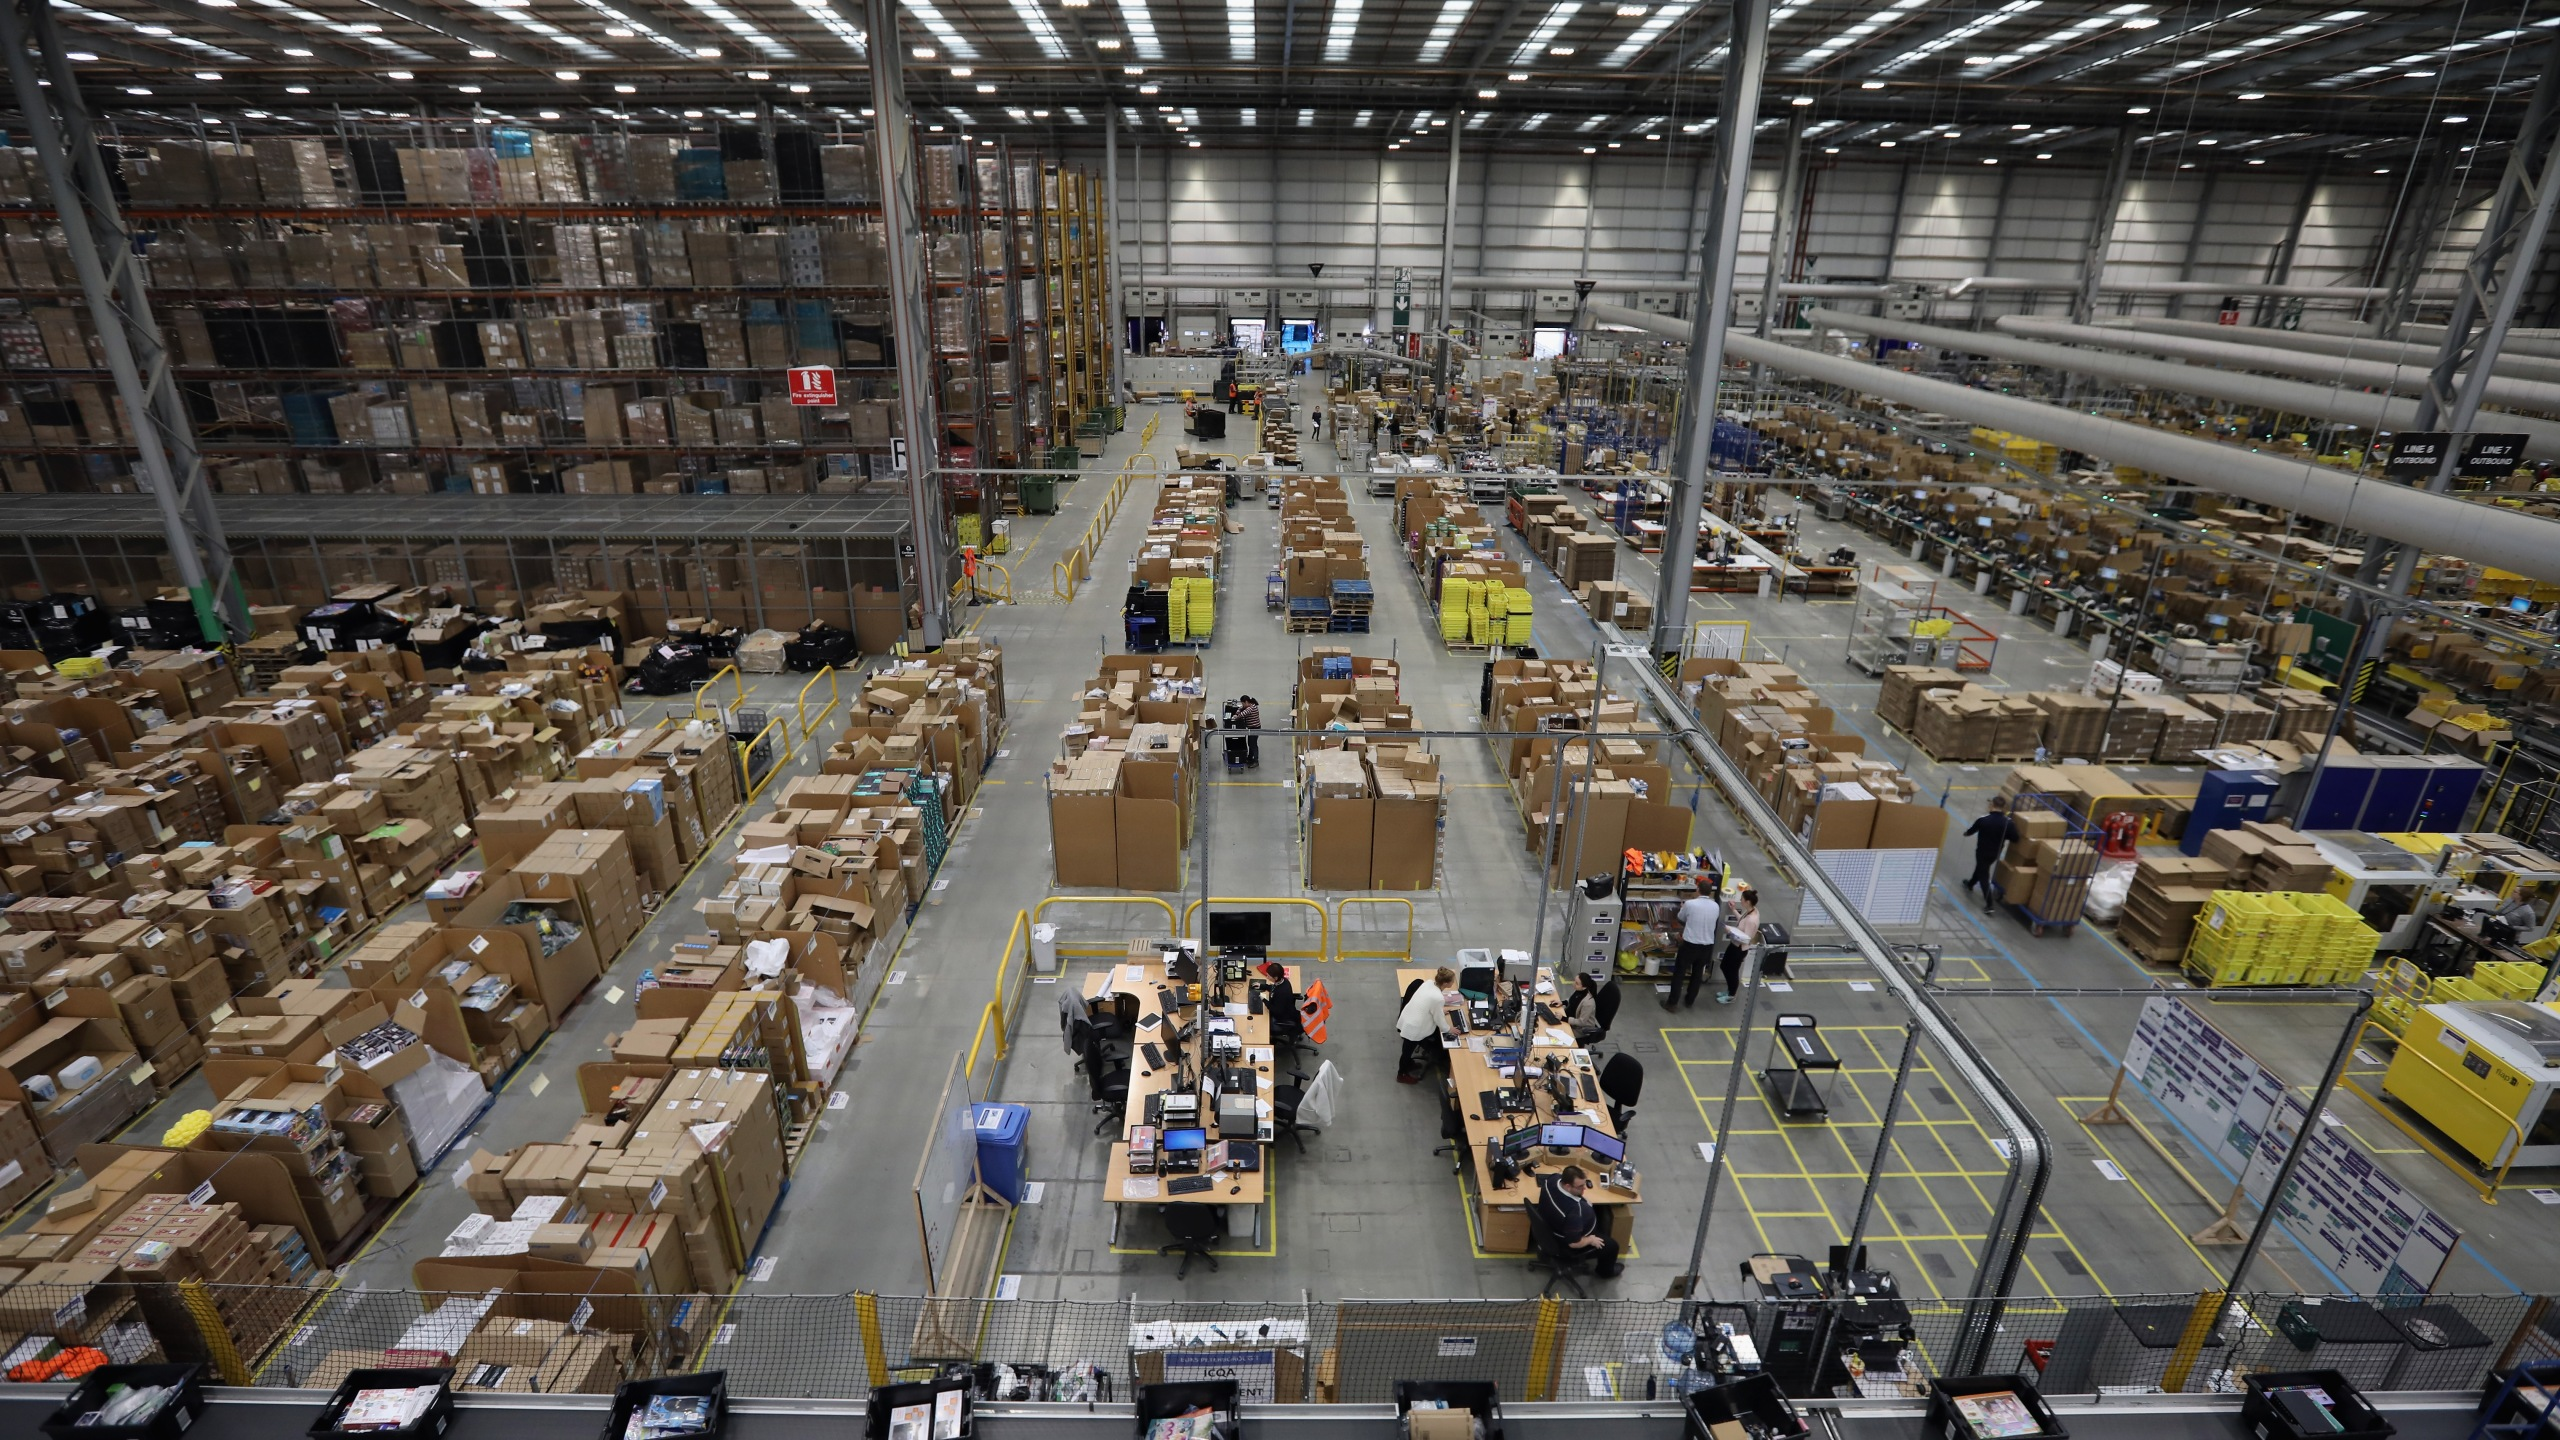 Parcels are processed and prepared for dispatch at Amazon's fulfillment centre on November 15, 2016 in Peterborough, England. (Credit: Dan Kitwood/Getty Images)